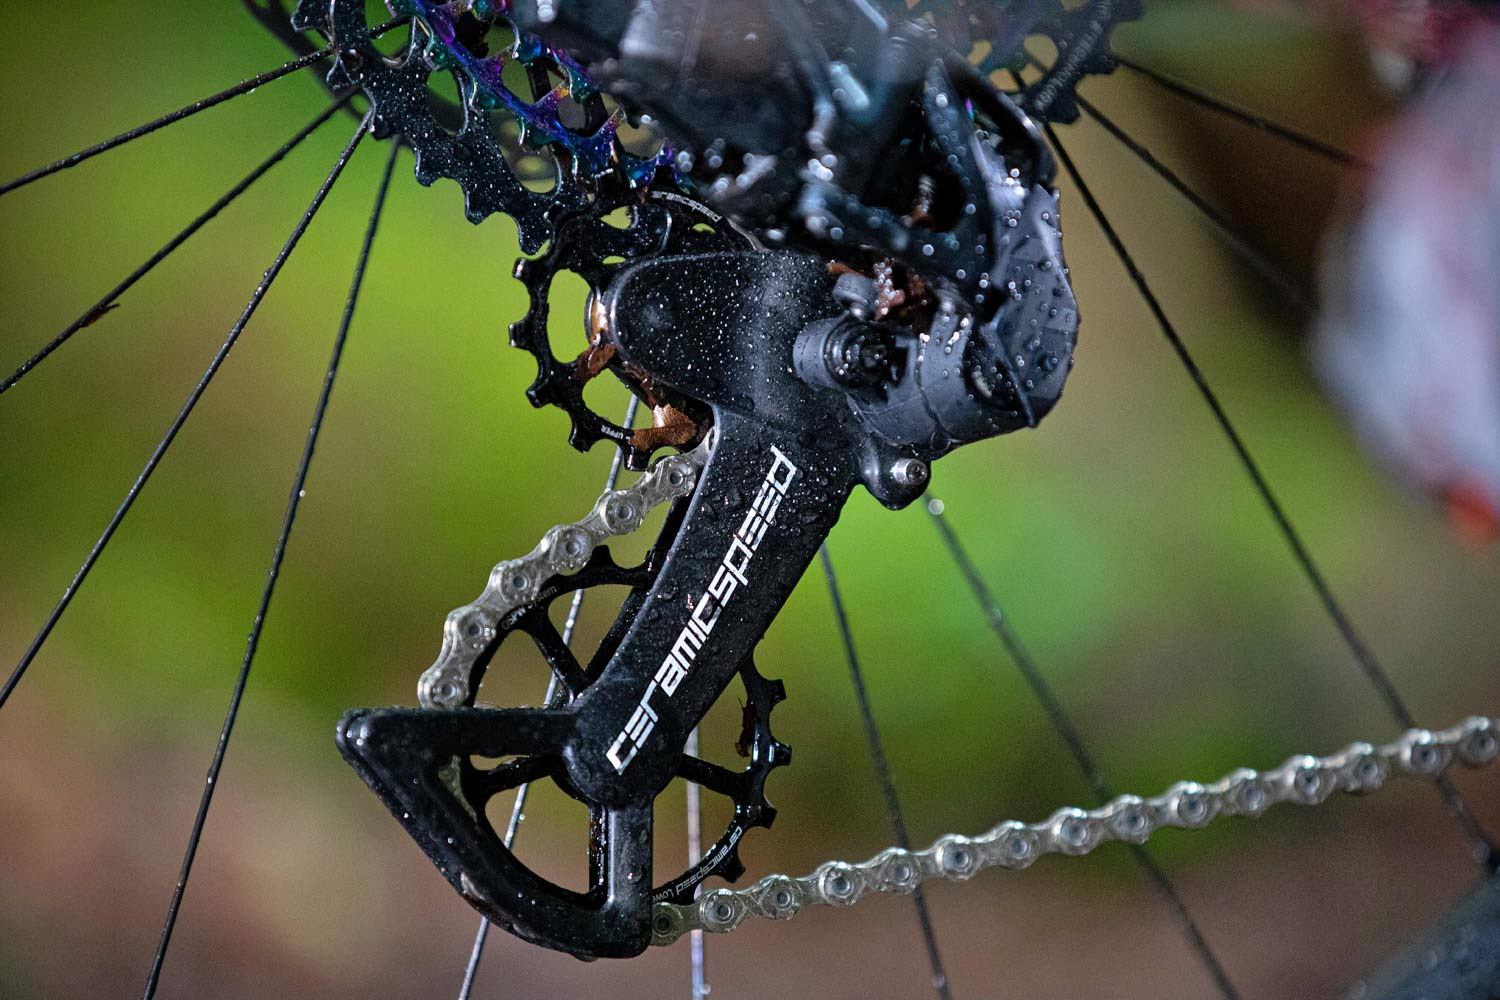 CeramicSpeed-OSPW-X-SRAM-Eagle-kit_ceramic-bearing-oversized-pulley-wheel-derailleur-upgrade_on-bike-1.jpg